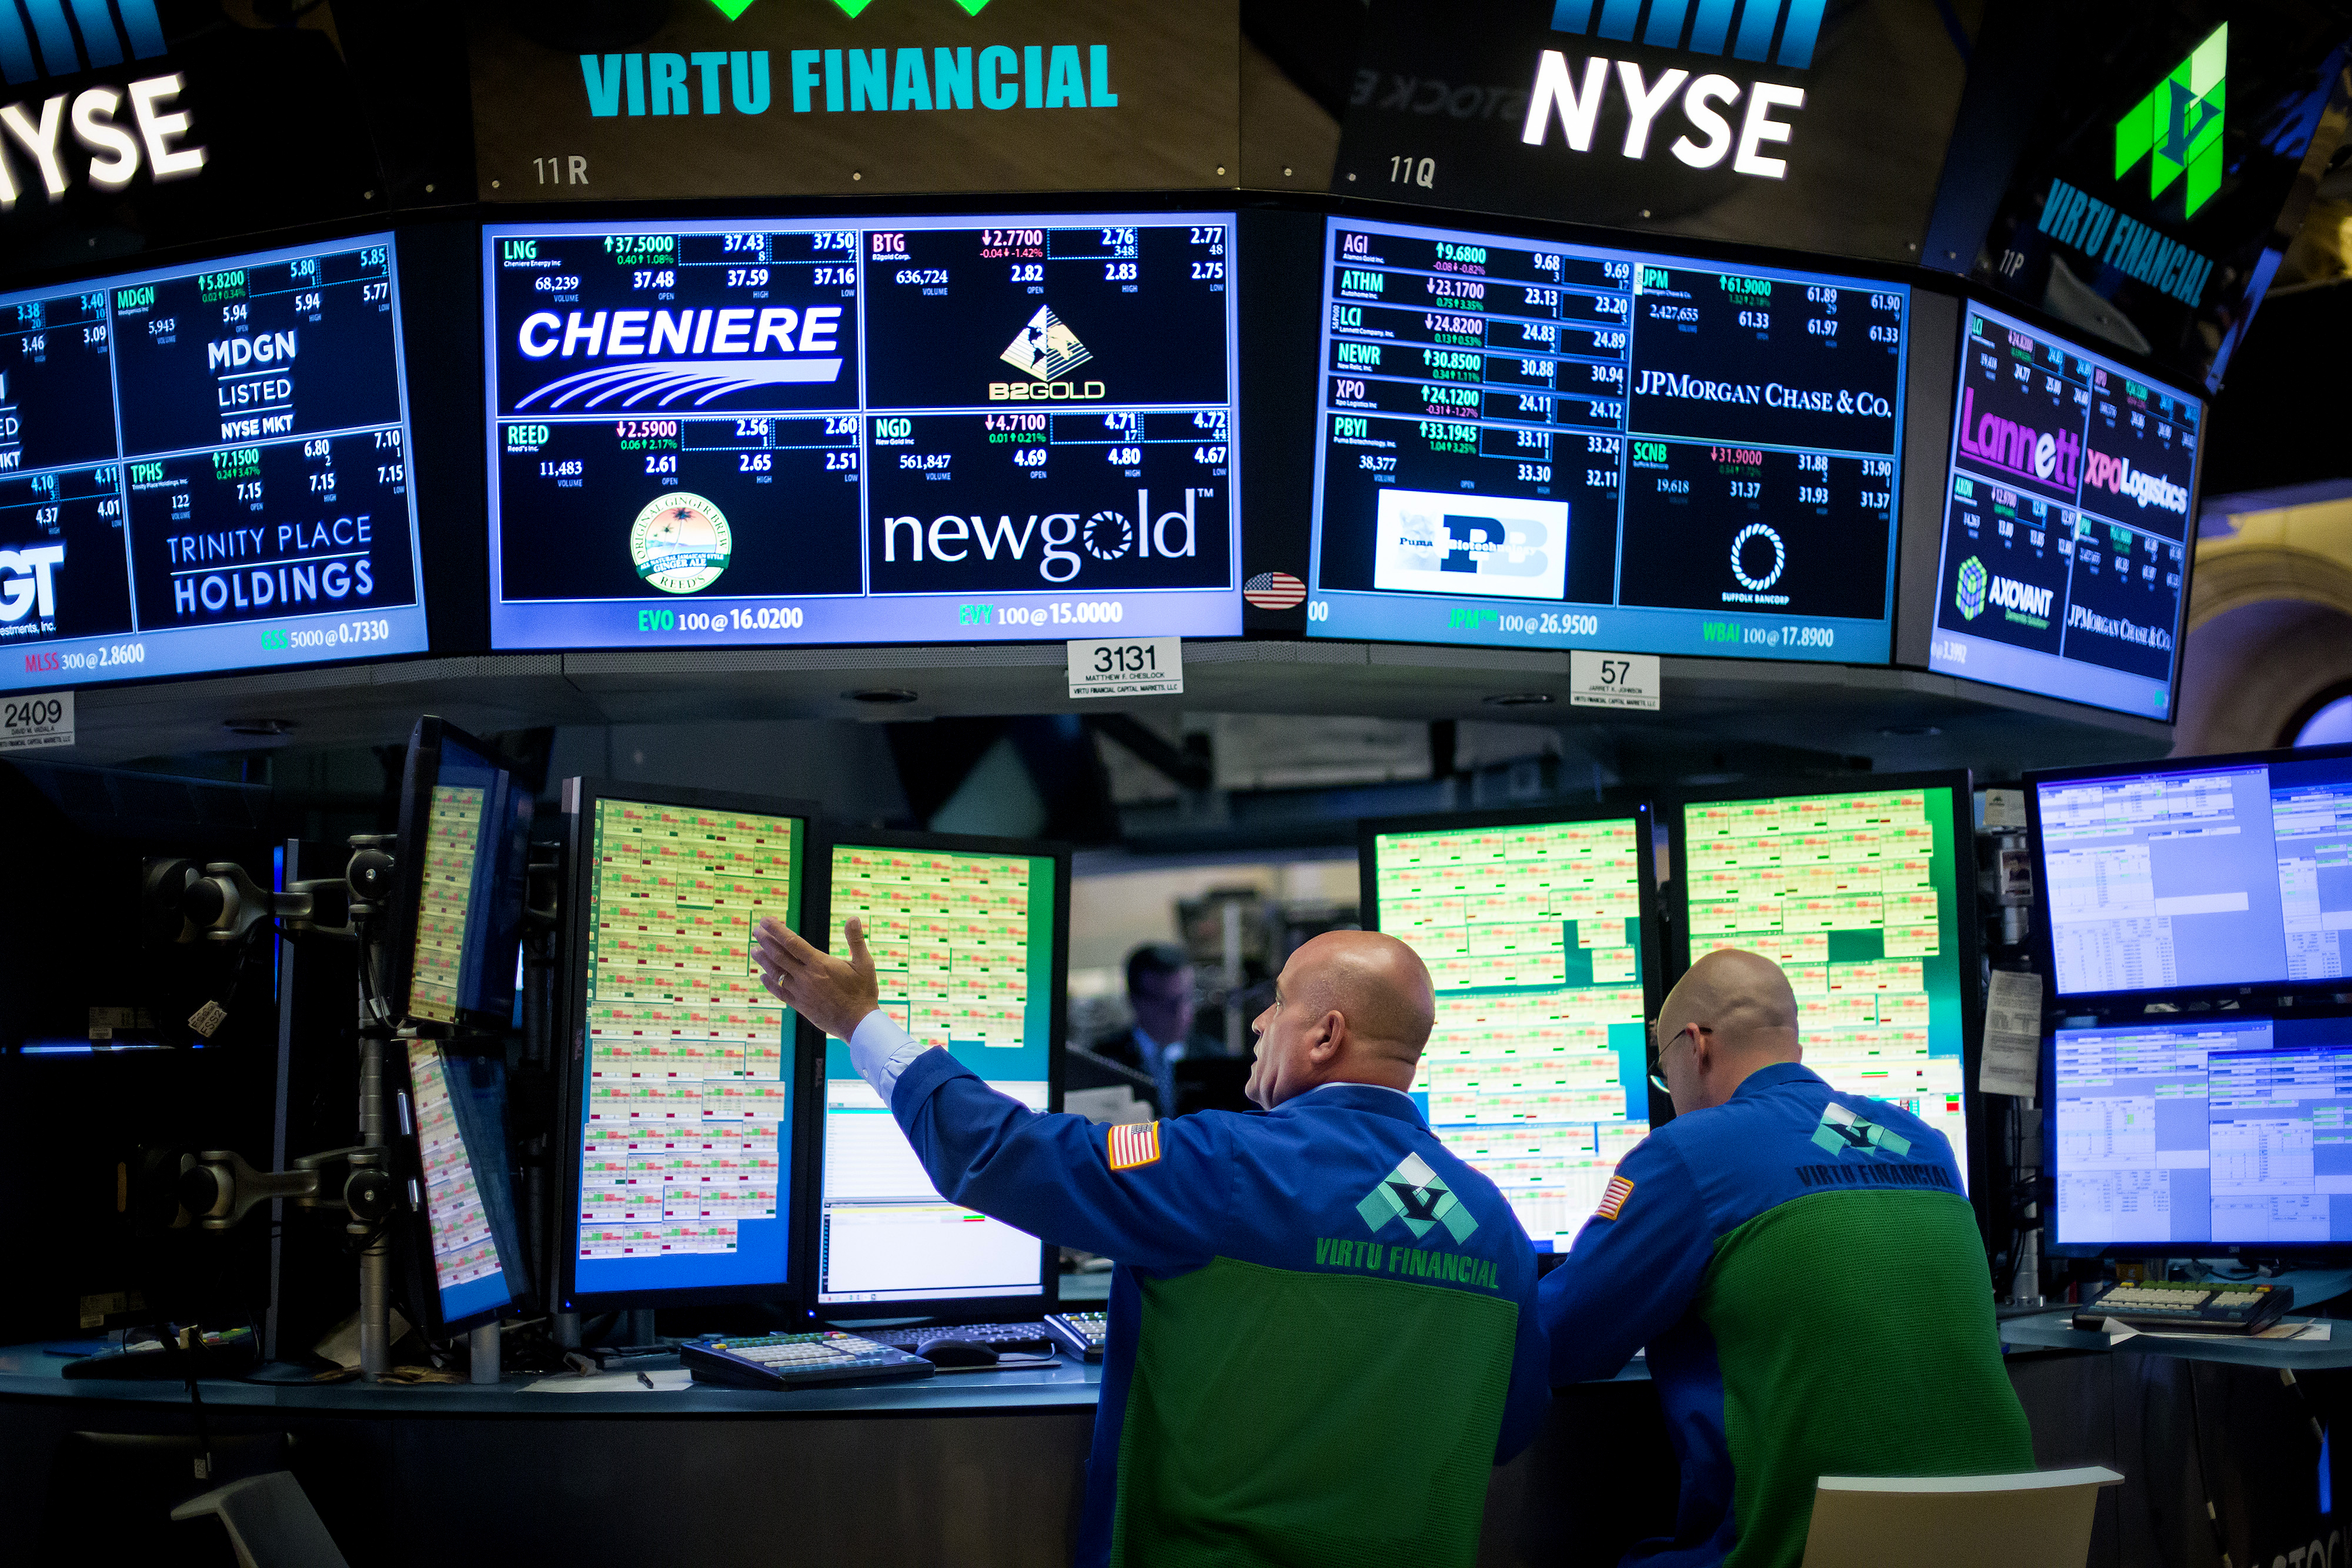 Trading On The Floor Of The NYSE As U.S. Stocks Rise Amid Stronger Job Gains Boost Optimism On Economy